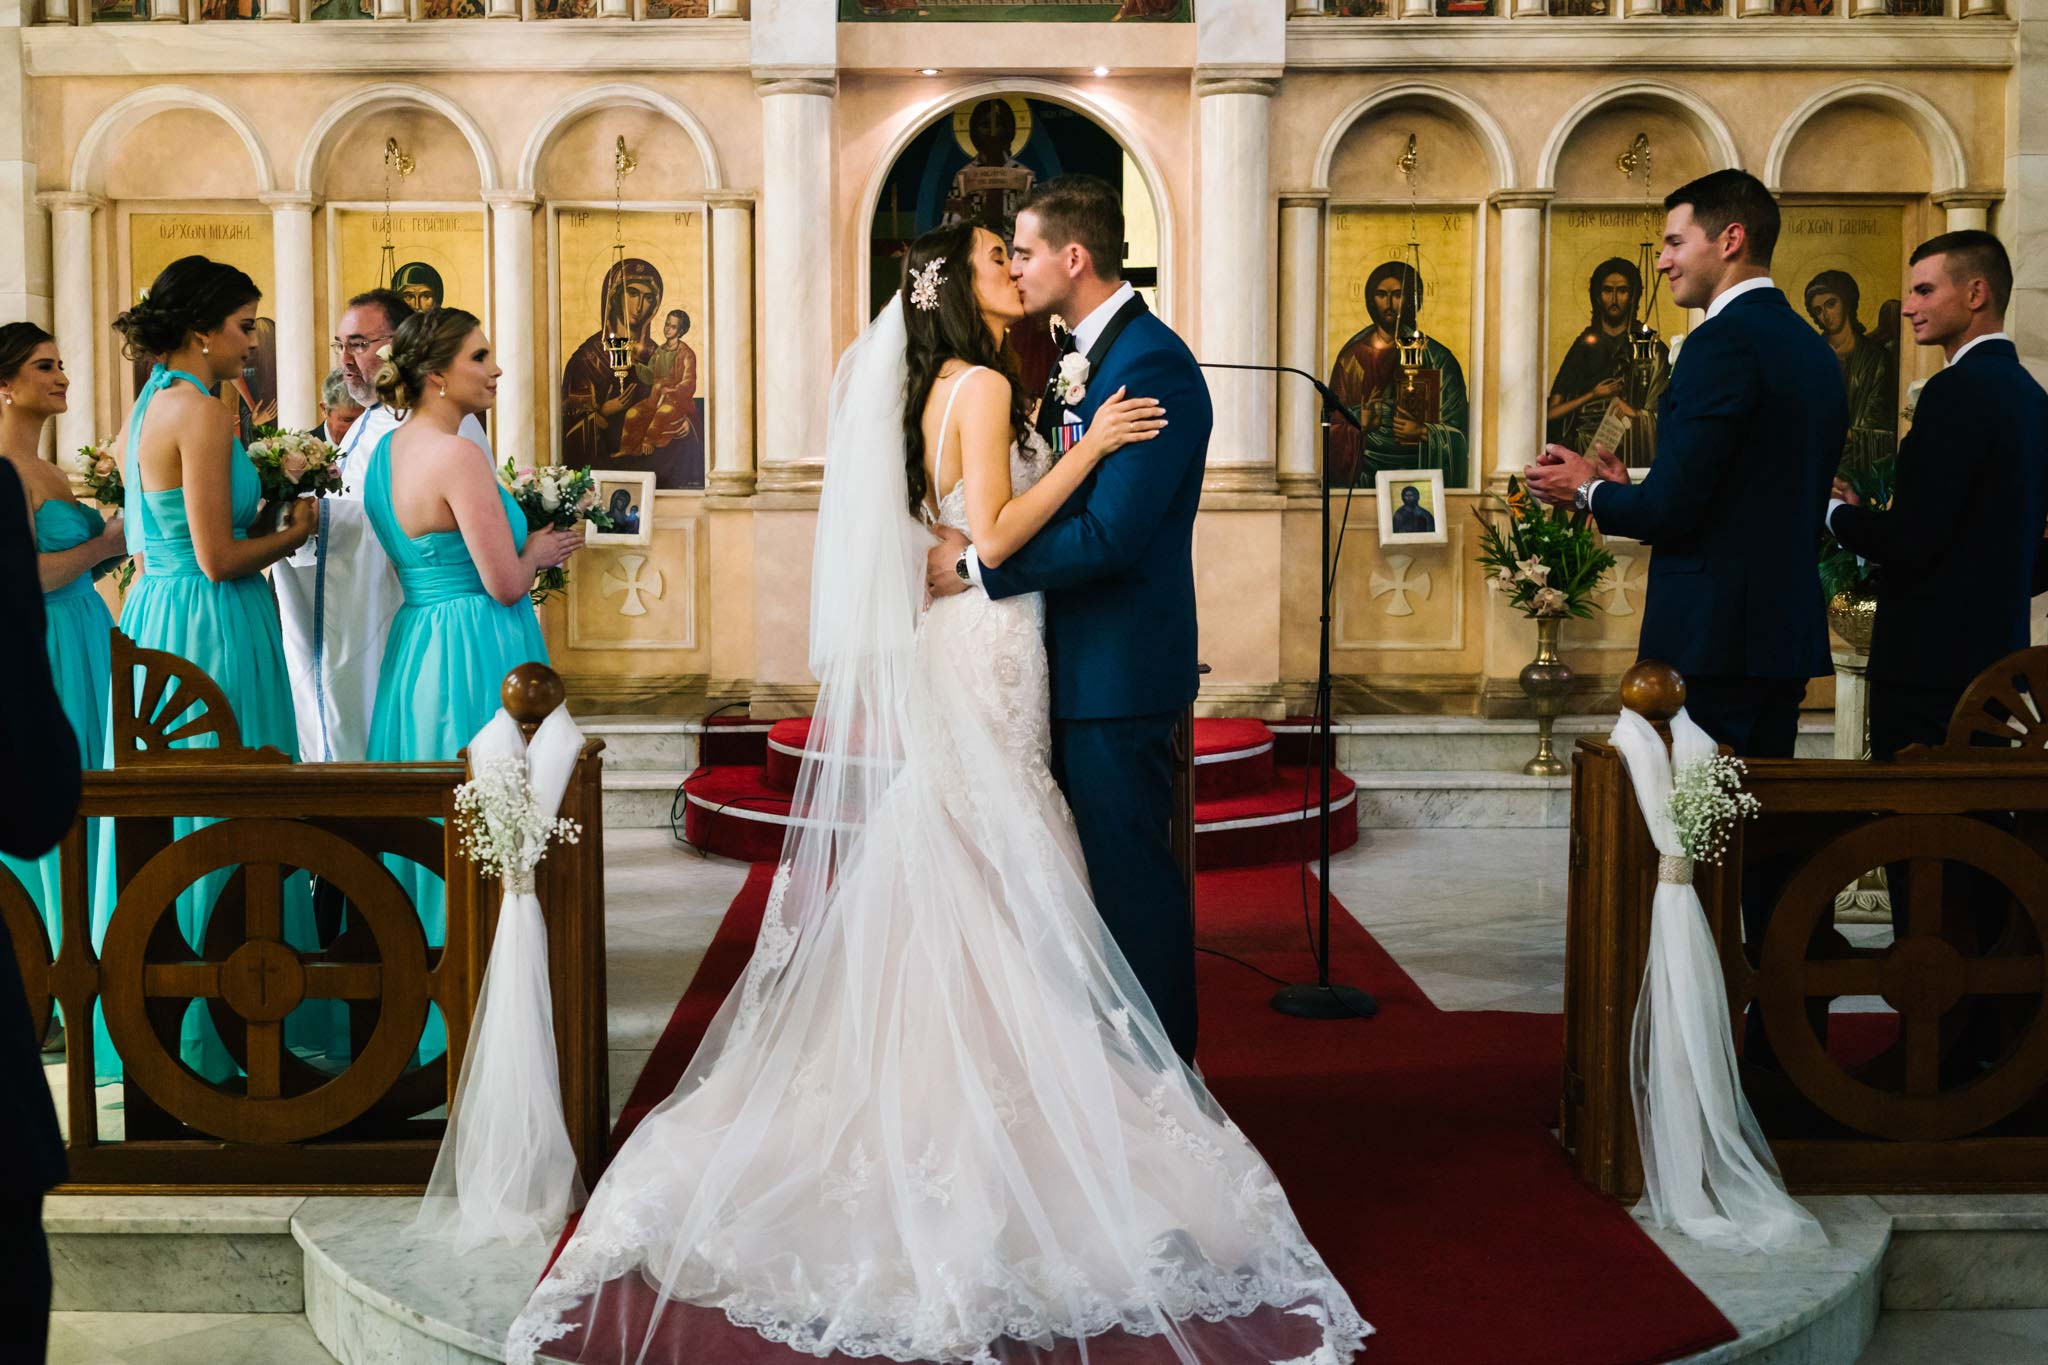 Bride and groom's first kiss during Greek orthodox wedding ceremony